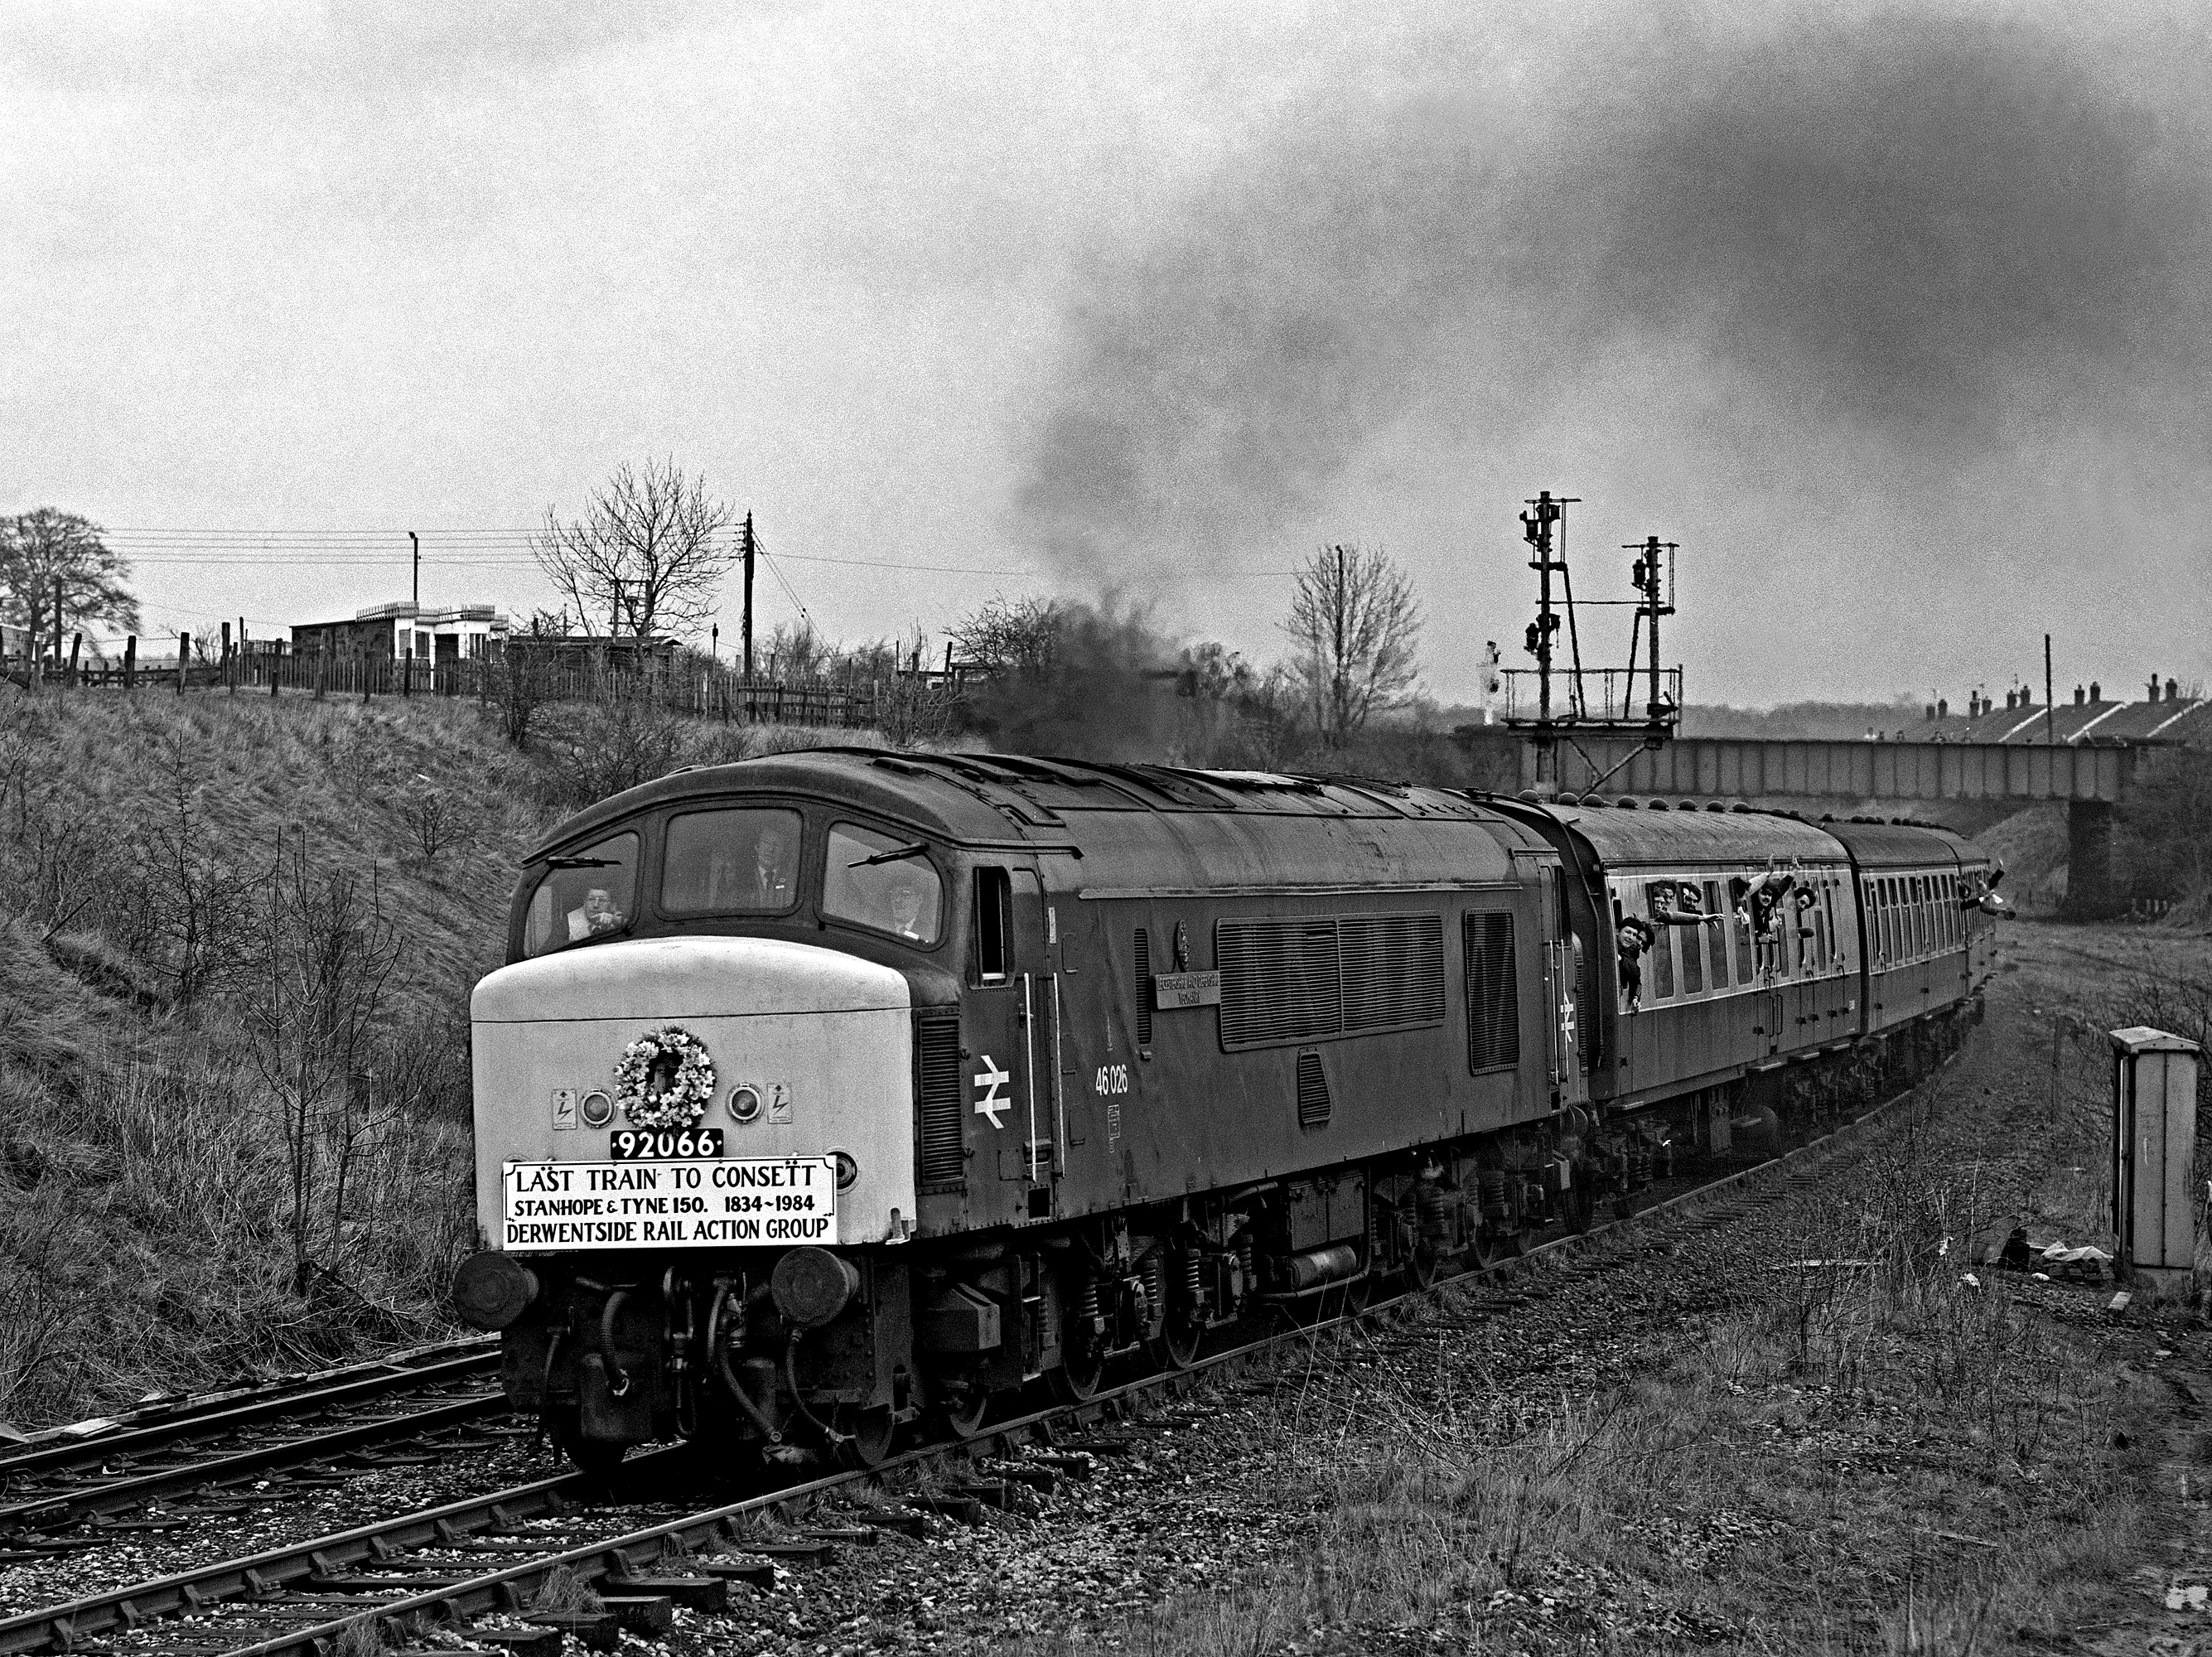 46026 on the last passenger train to consett at Stella Gill (17 March 1984)